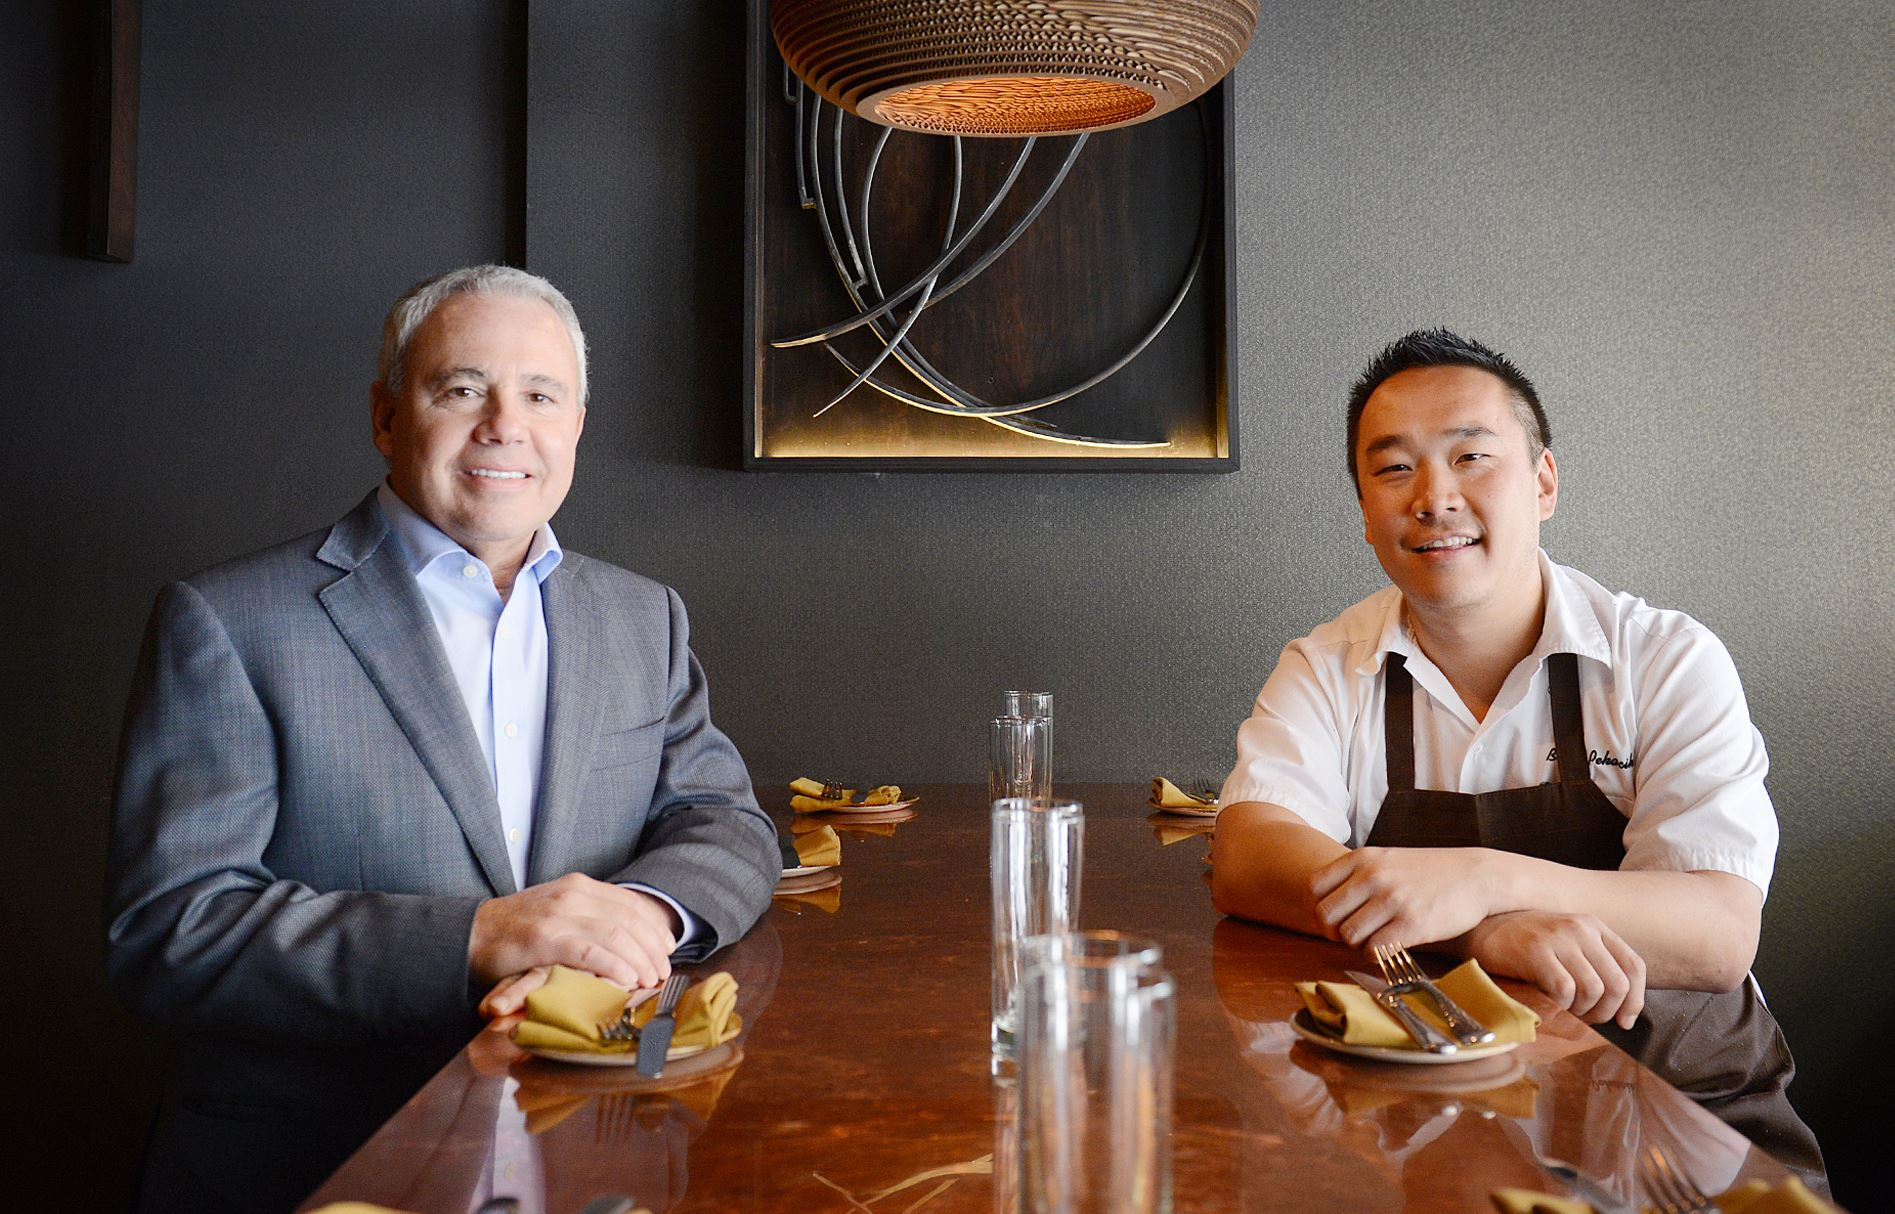 20140903jrsternmag Spoon co-owners Rick Stern and Brian Pekarcik have helped shape the Pittsburgh dining landscape.